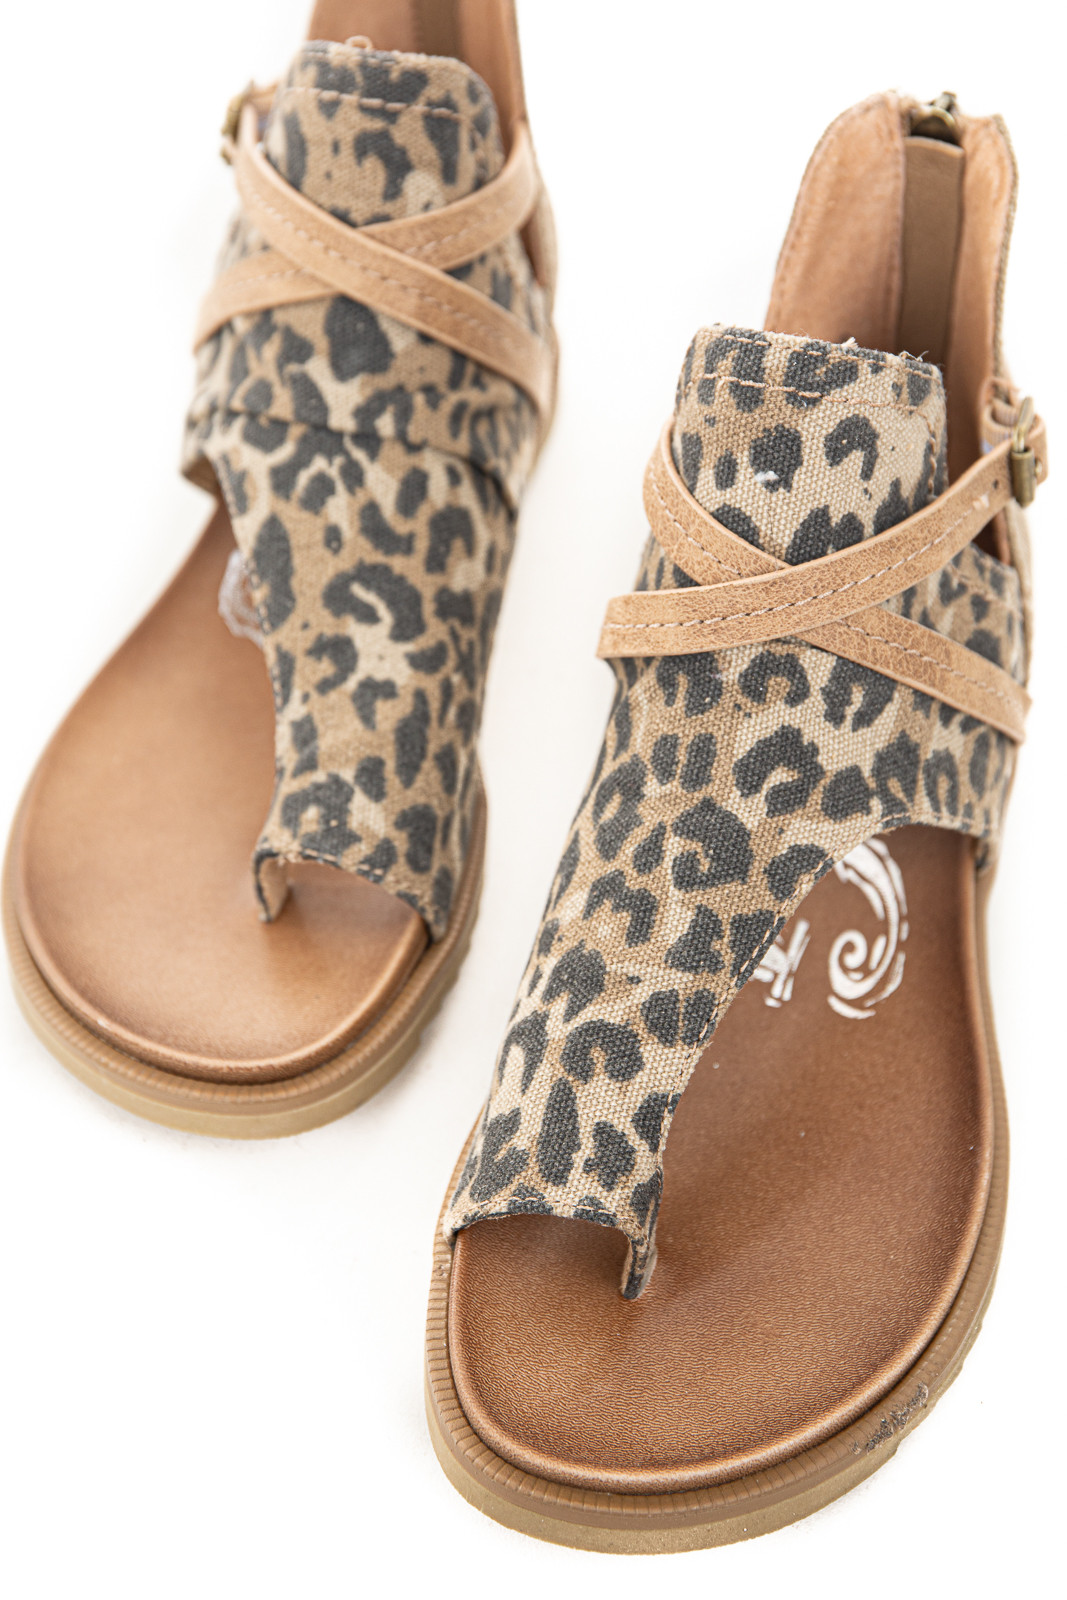 Leopard Gladiator Strappy Sandal with Zipper